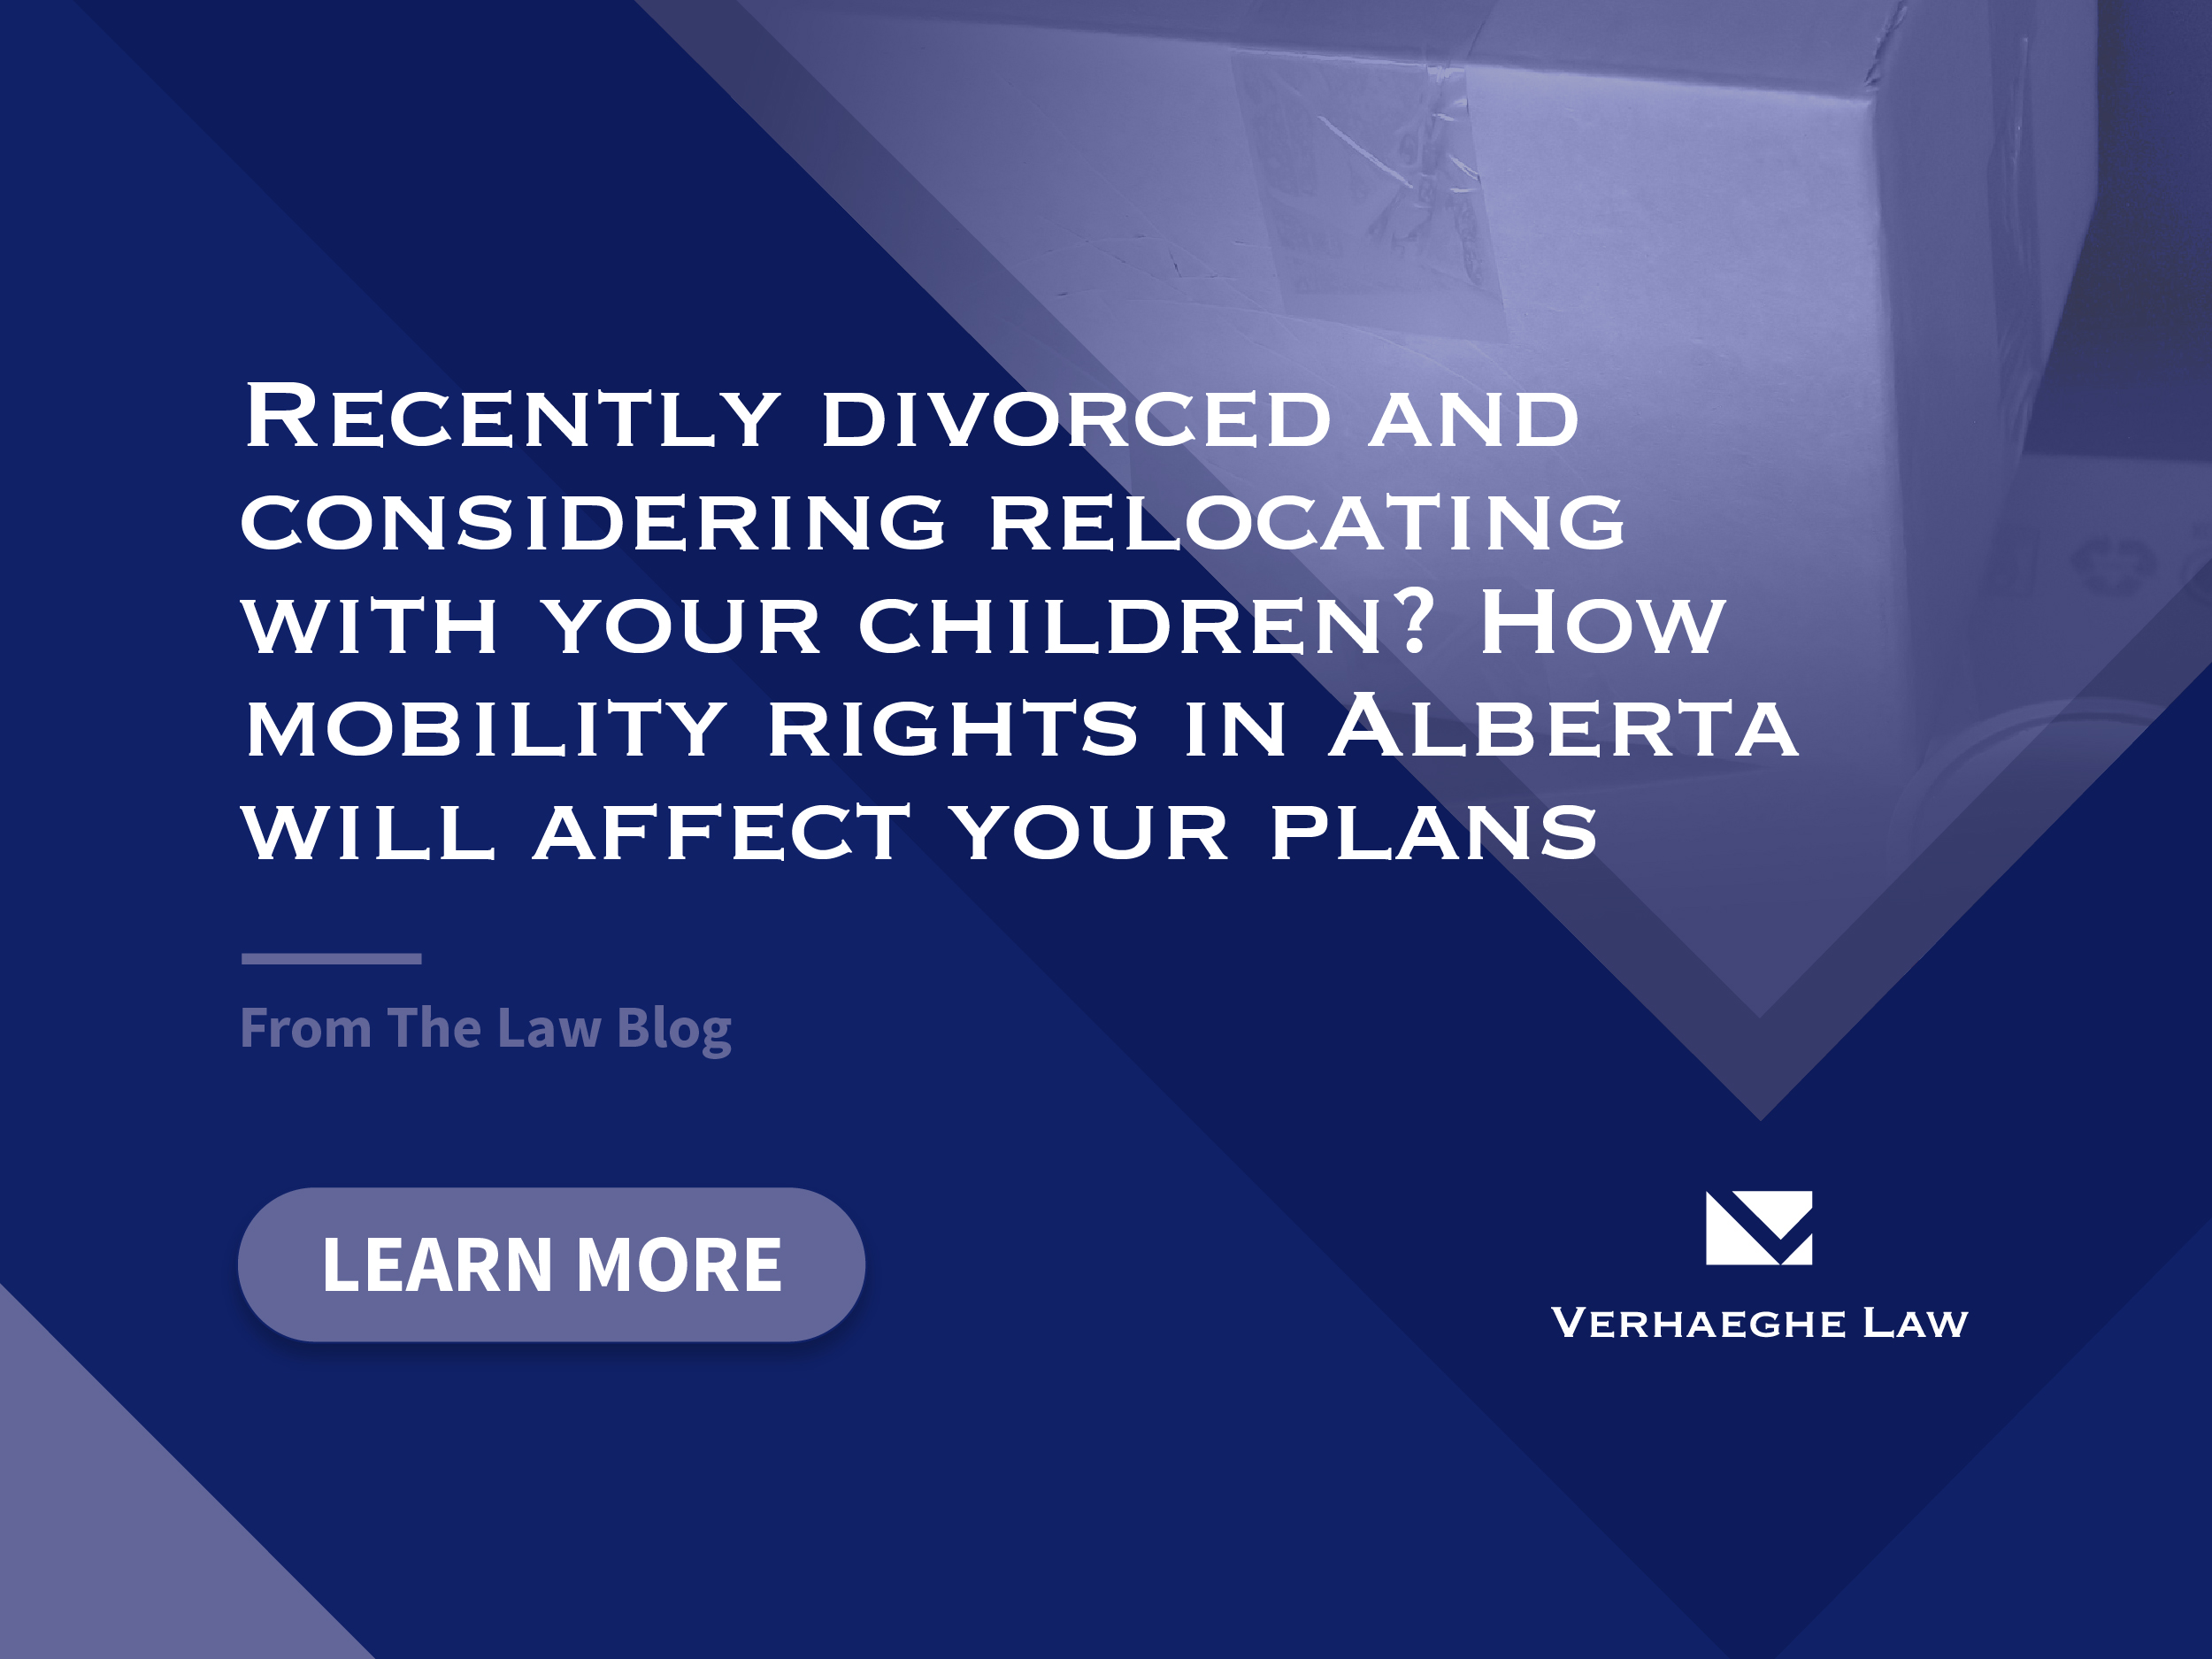 Recently Divorced and Considering Relocating With Your Children? How Mobility Rights In Alberta Will Affect Your Plans